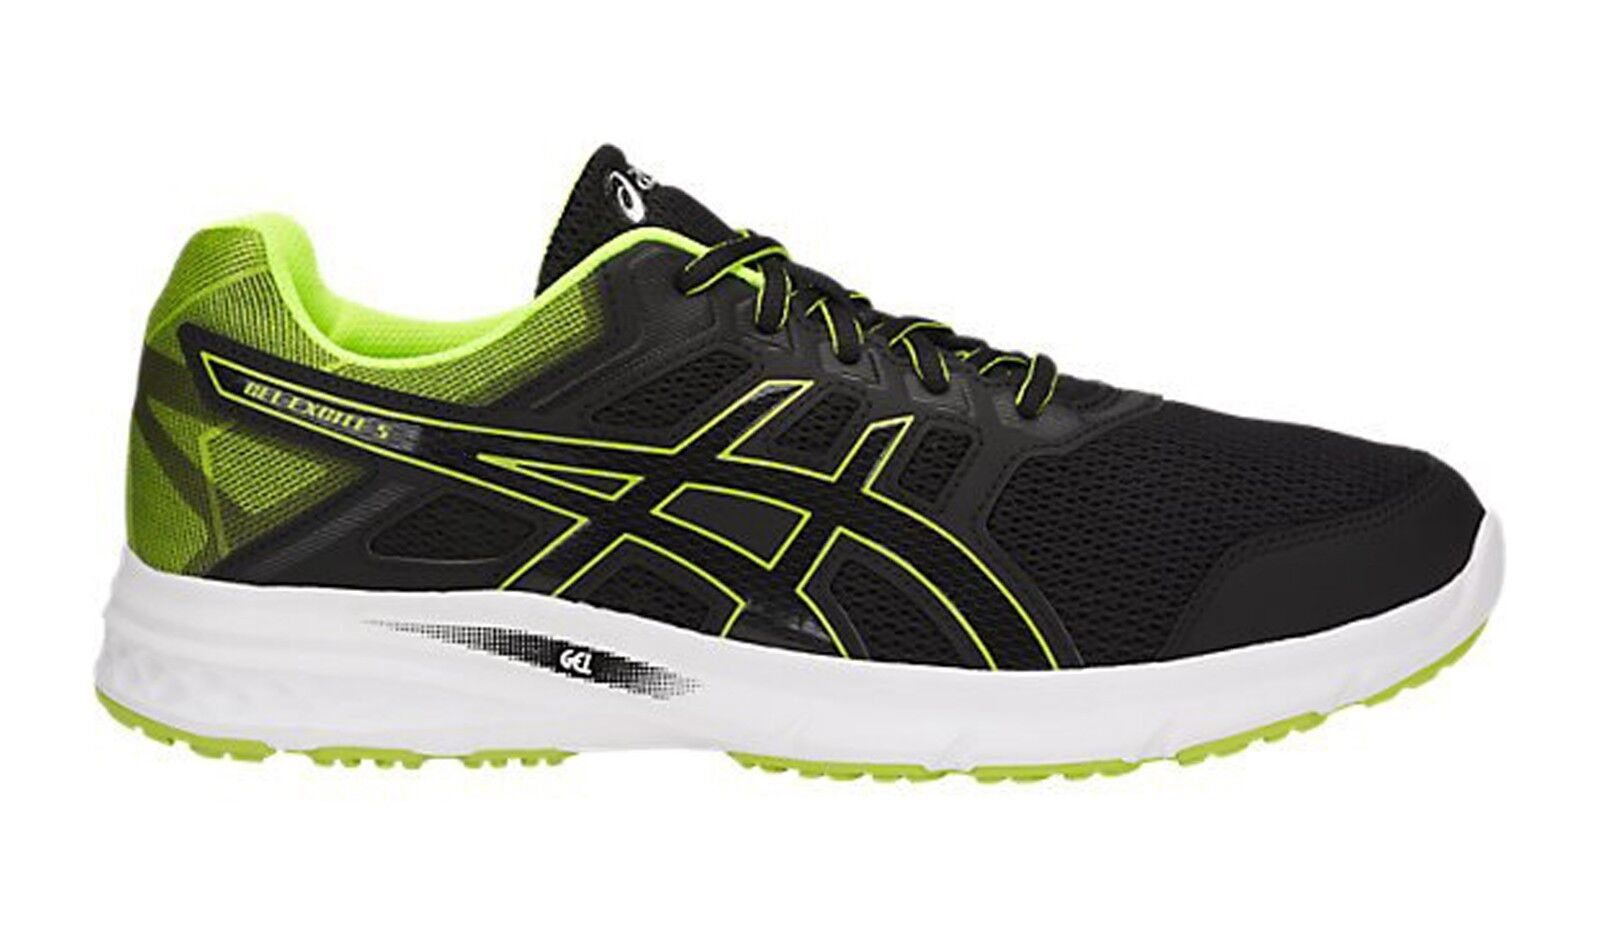 ASICS MENS RUNNING SHOES GEL-EXCITE 5 SIZE 8-12 blueE BLACK T7F3N